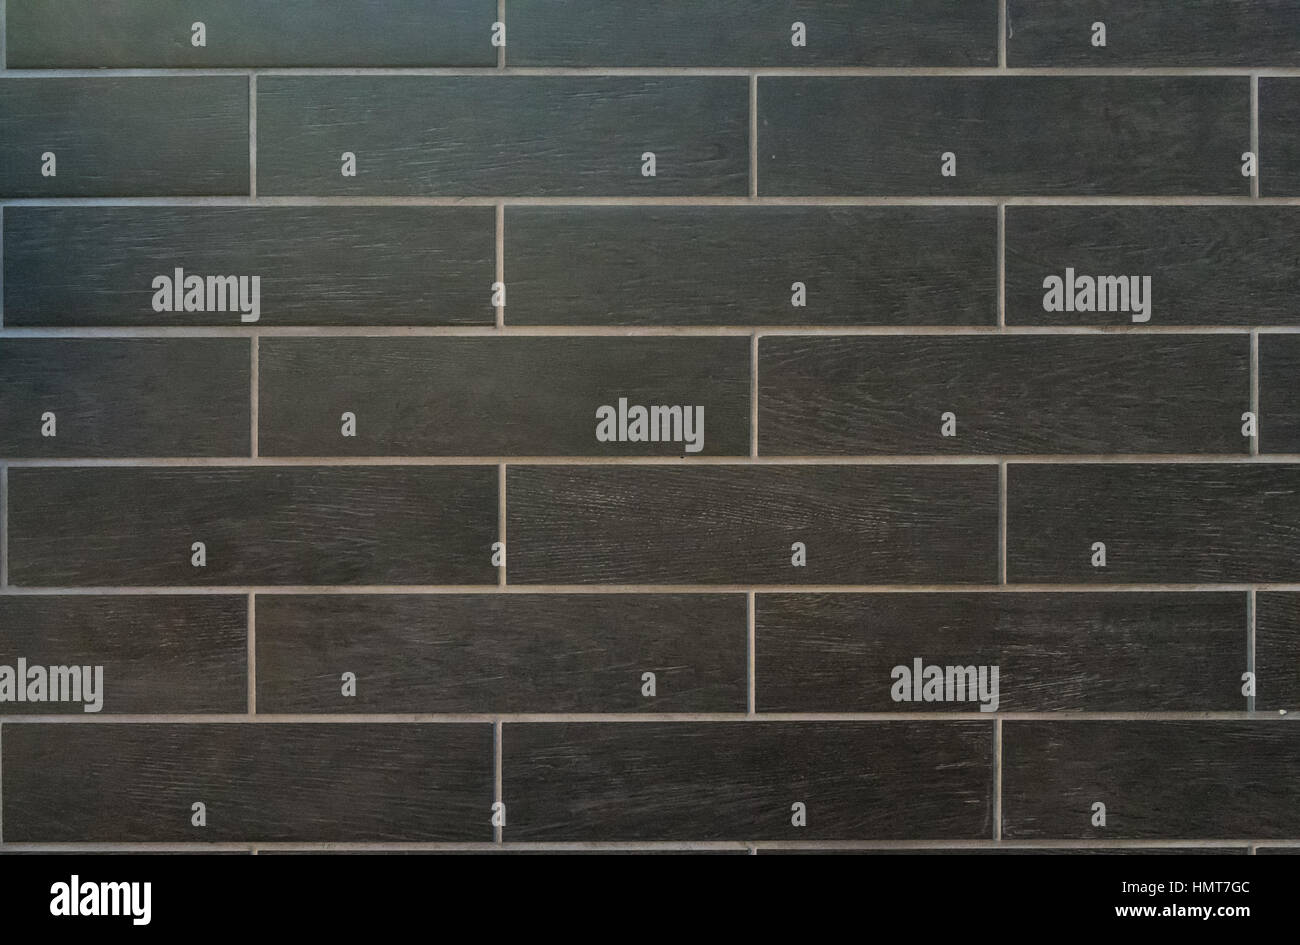 Long Gray Tiles with White Grout and a wood grain finish Stock Photo ...